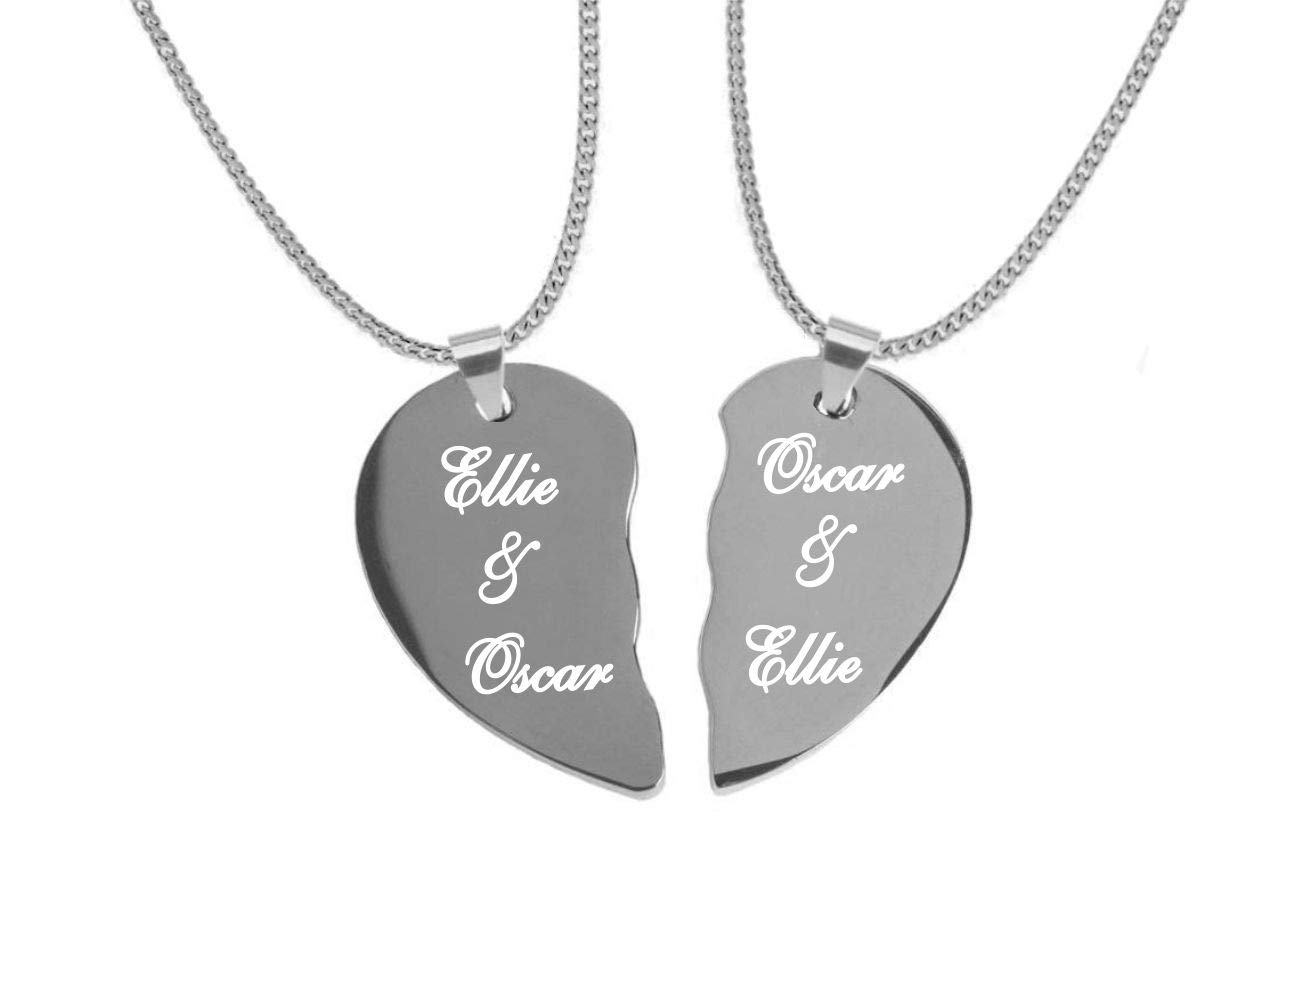 Engraved Couples Extra Small Silver Stainless Steel Split Broken Heart Necklace Set